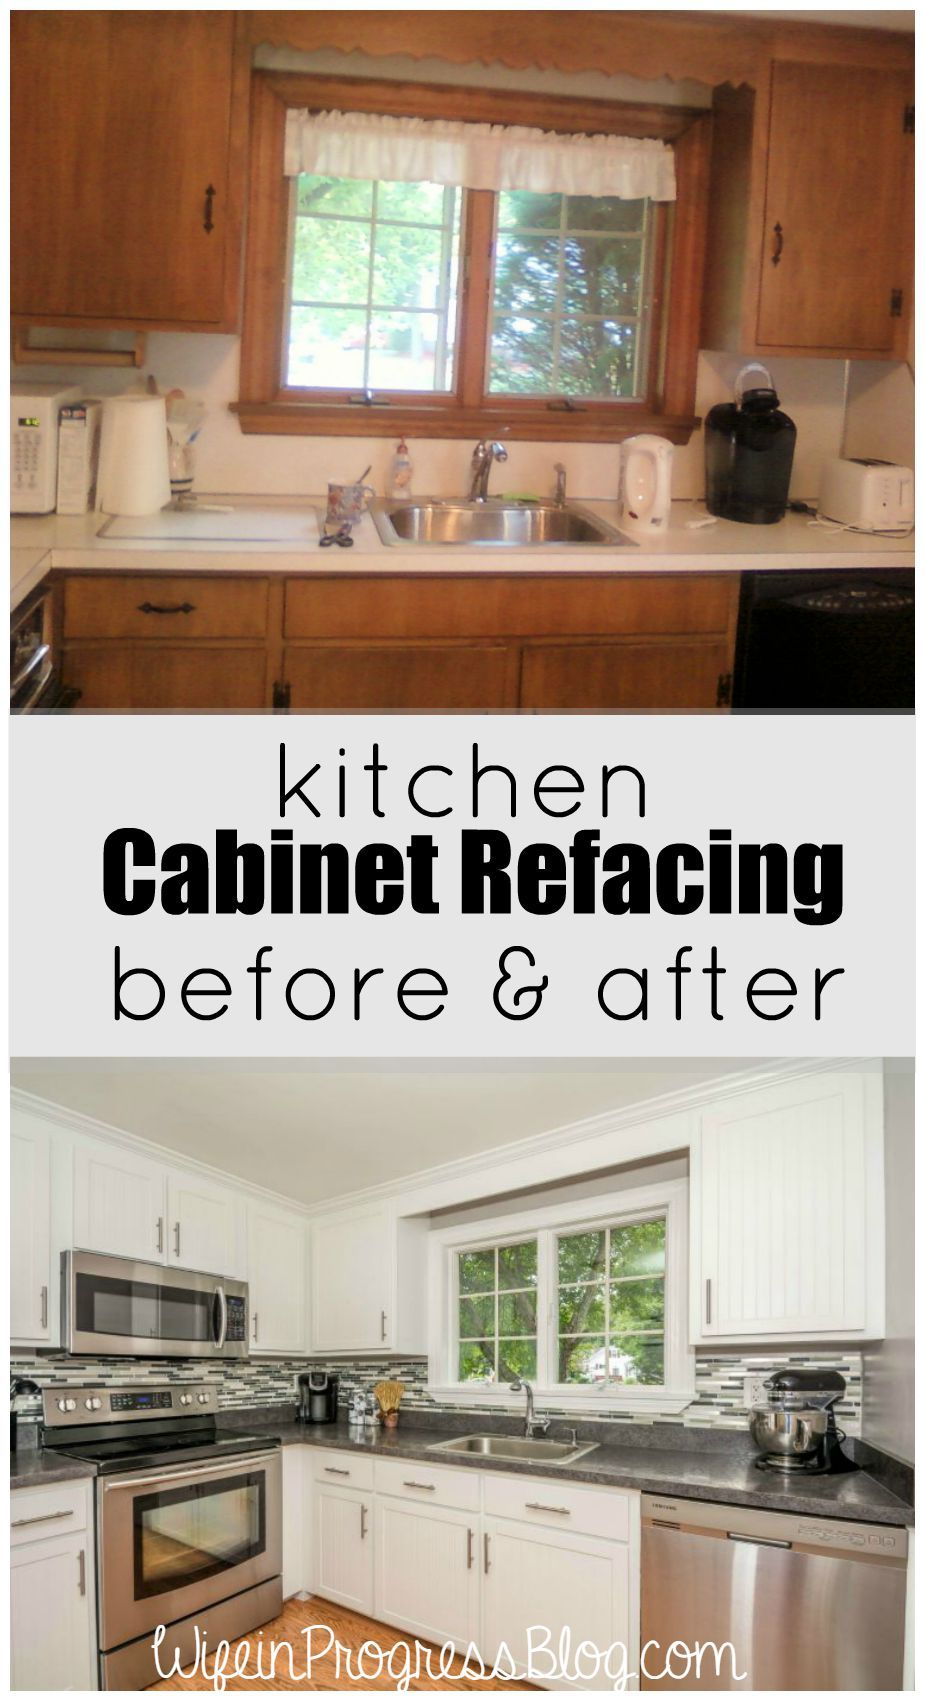 Kitchen Cabinet Refacing   A Cheaper Solution Than Ripping Out All Old  Cabinets. Looks Just As Good As New Cabinets, Too!